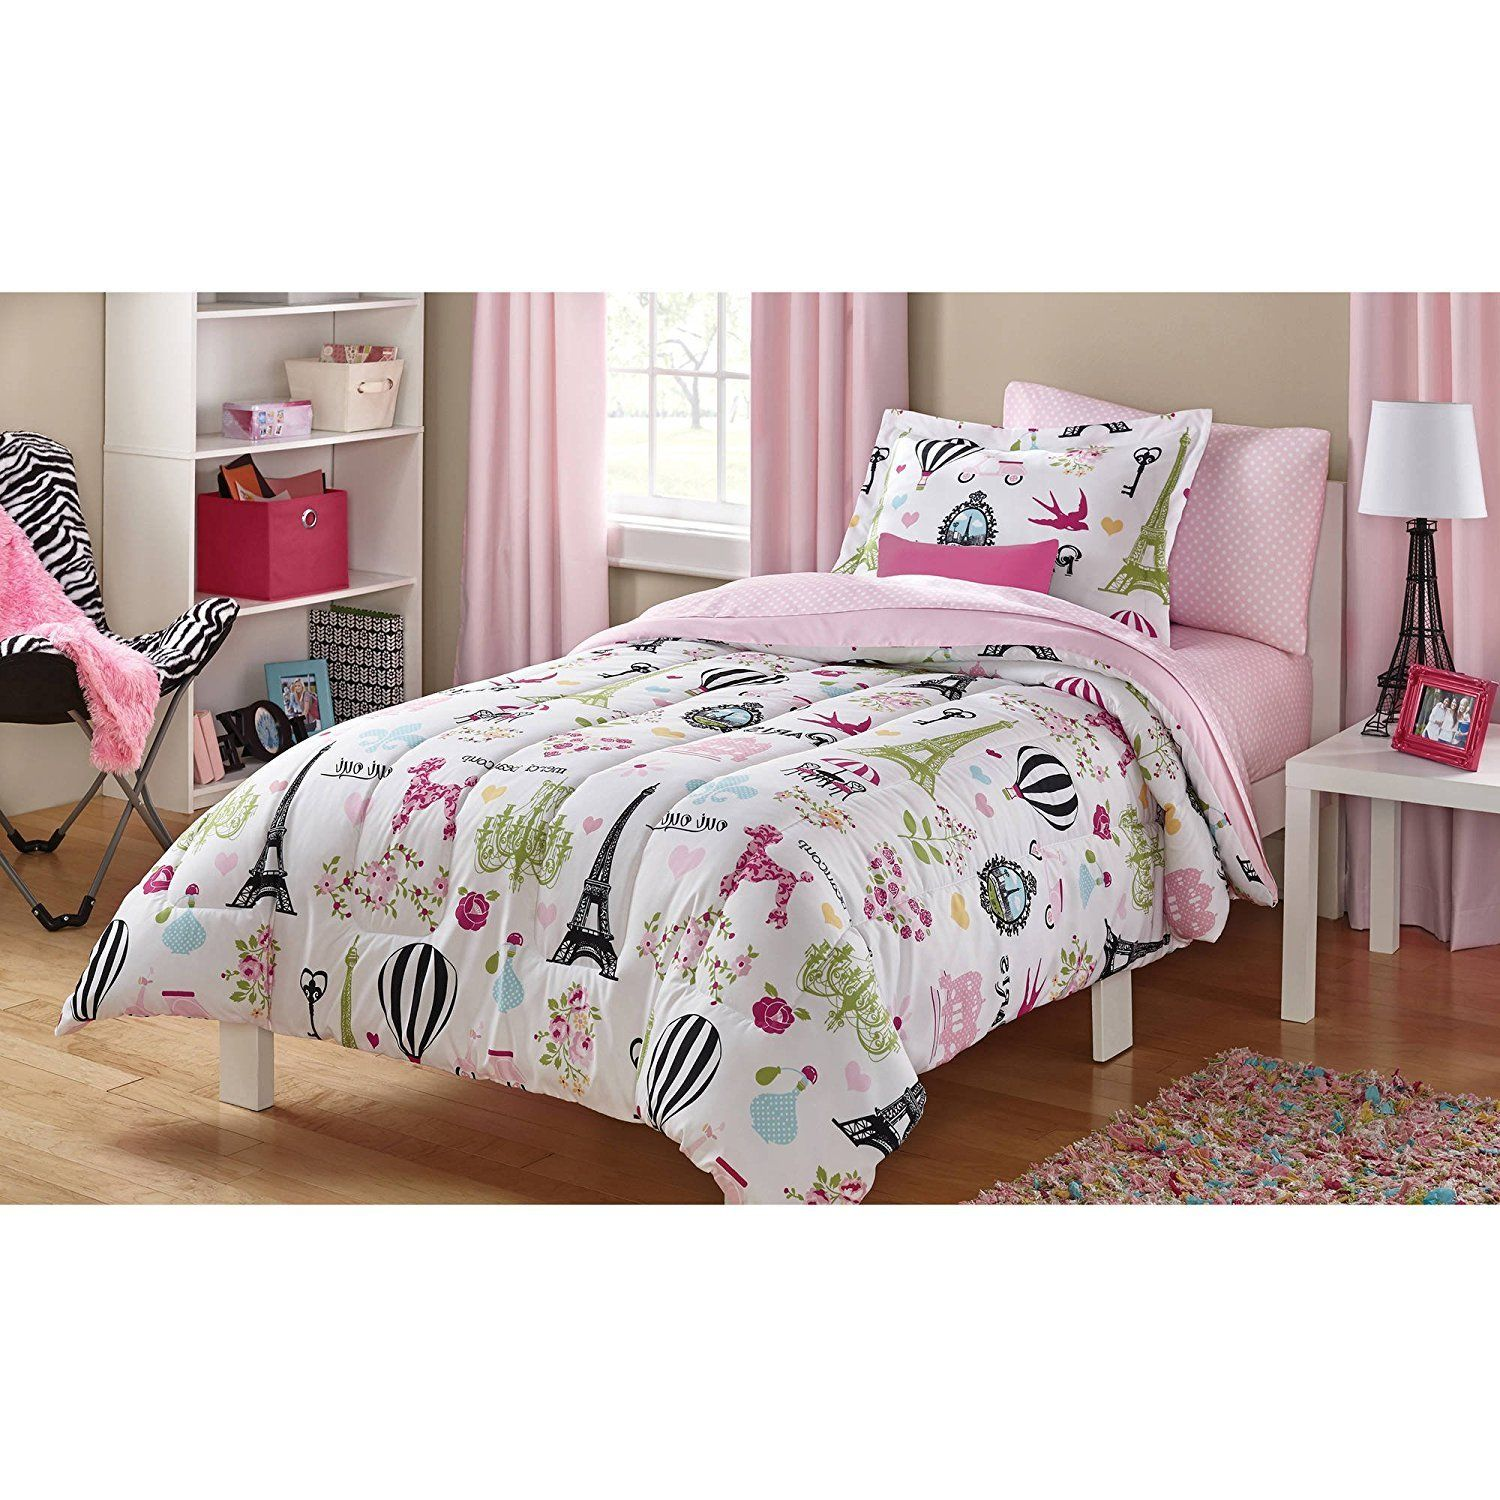 Girls White Pink Parisian Icons Eiffel Tower Comforter Twin Set